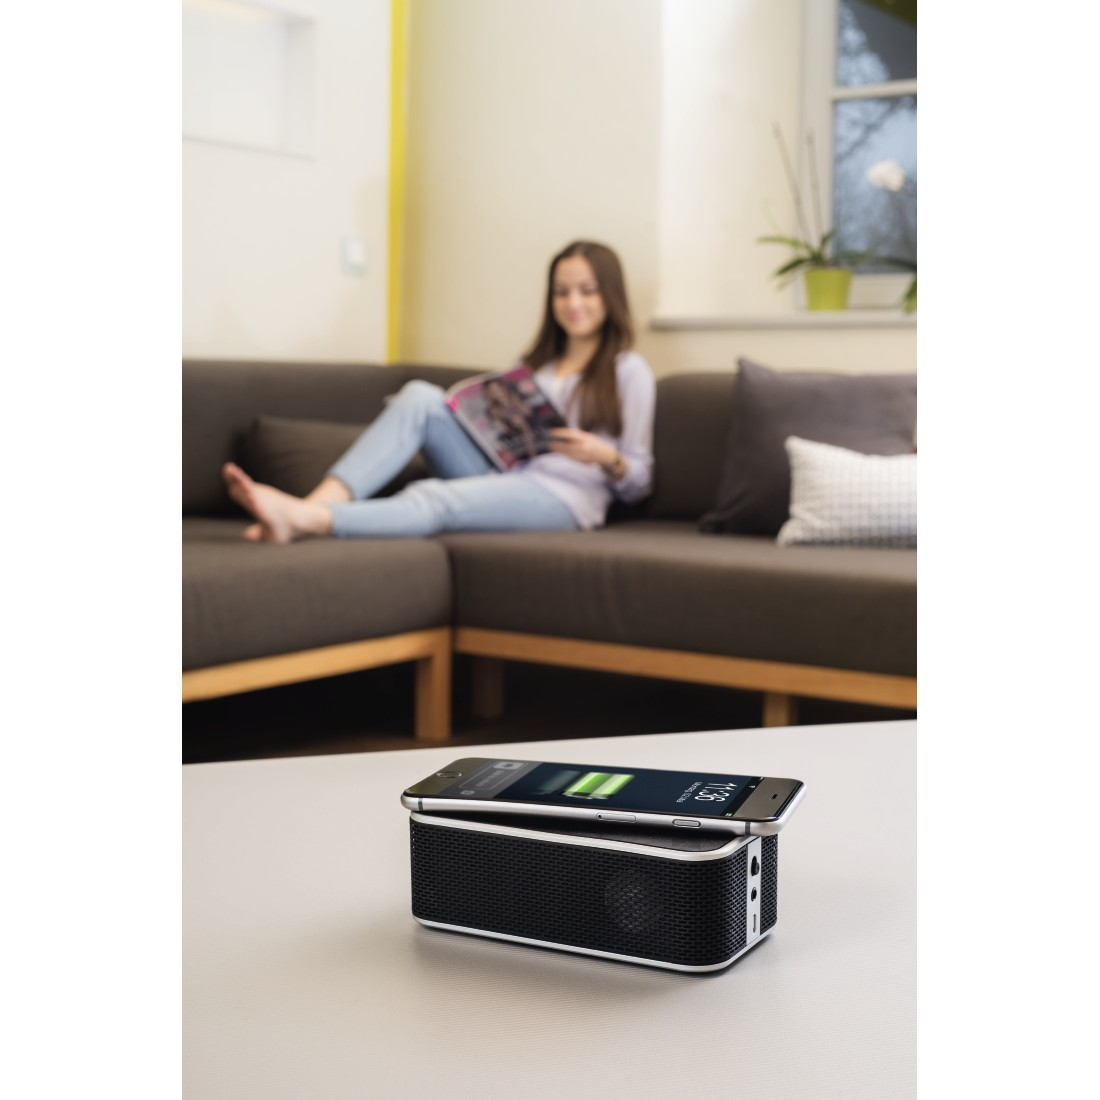 awx High-Res Appliance - Hama, Bluetooth Speaker + Power Brick Qi Charger